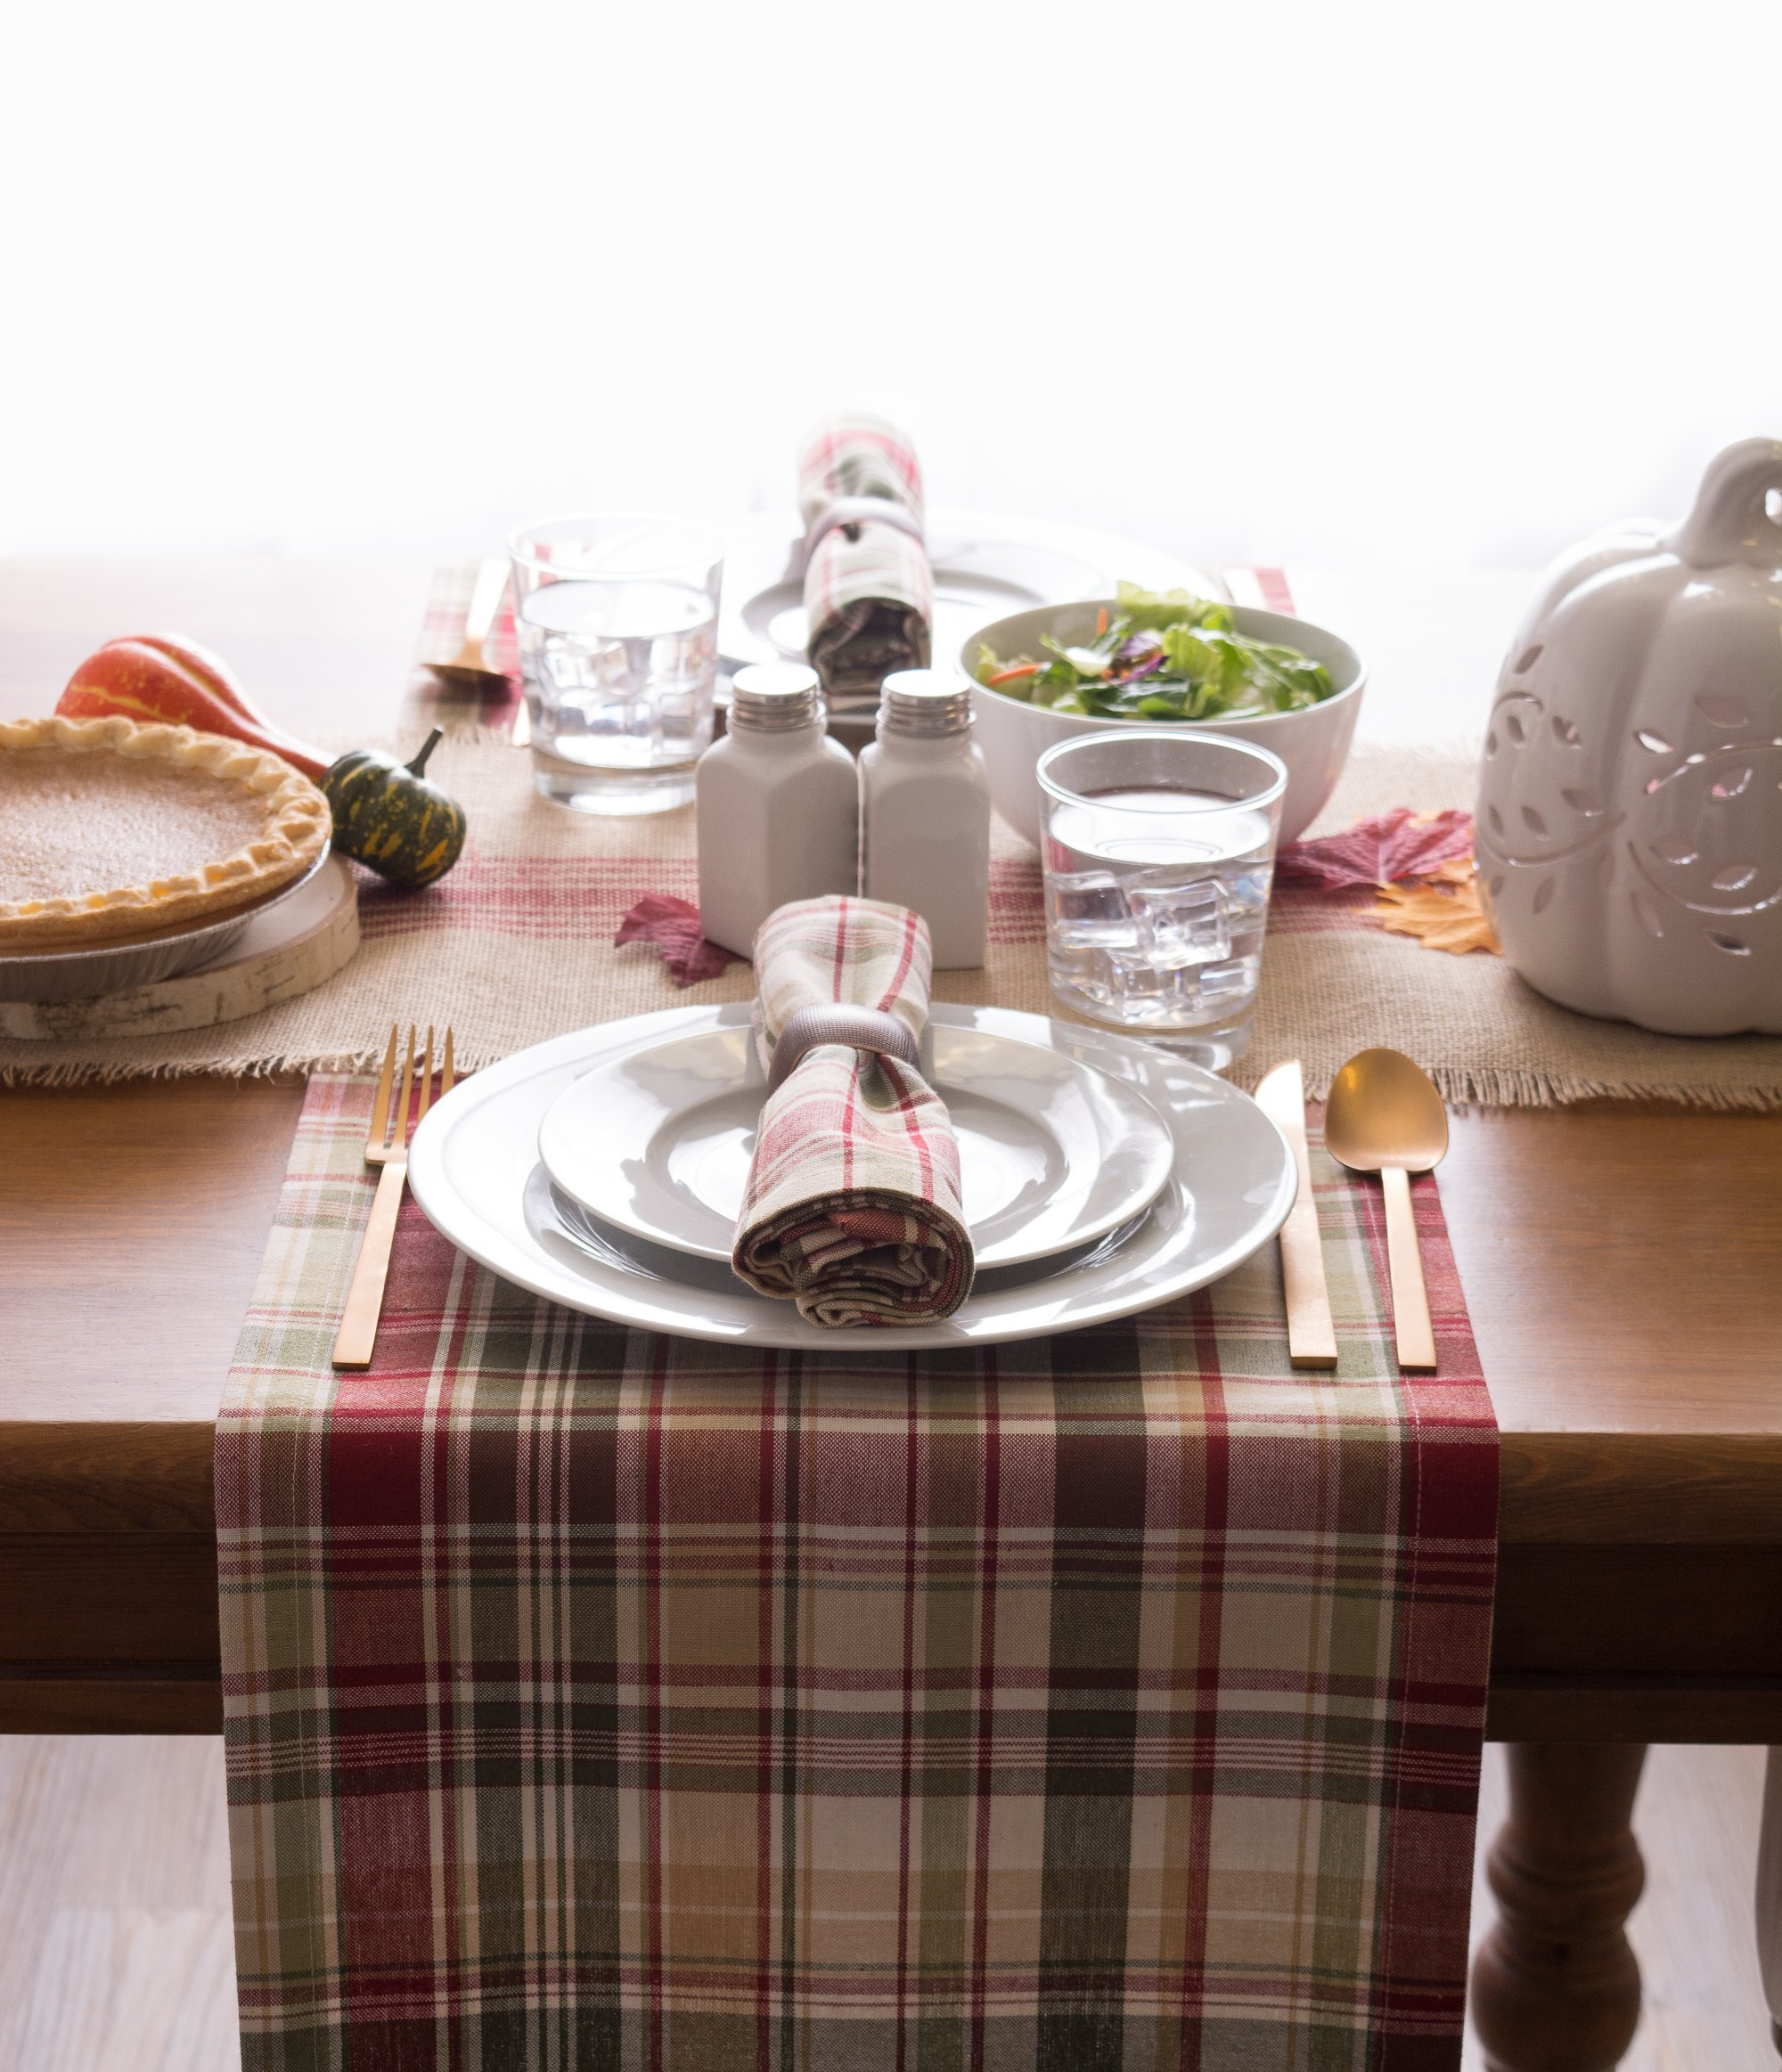 Cabin Plaid 100% Cotton Table Runner (14x108'') by DII (Image #5)